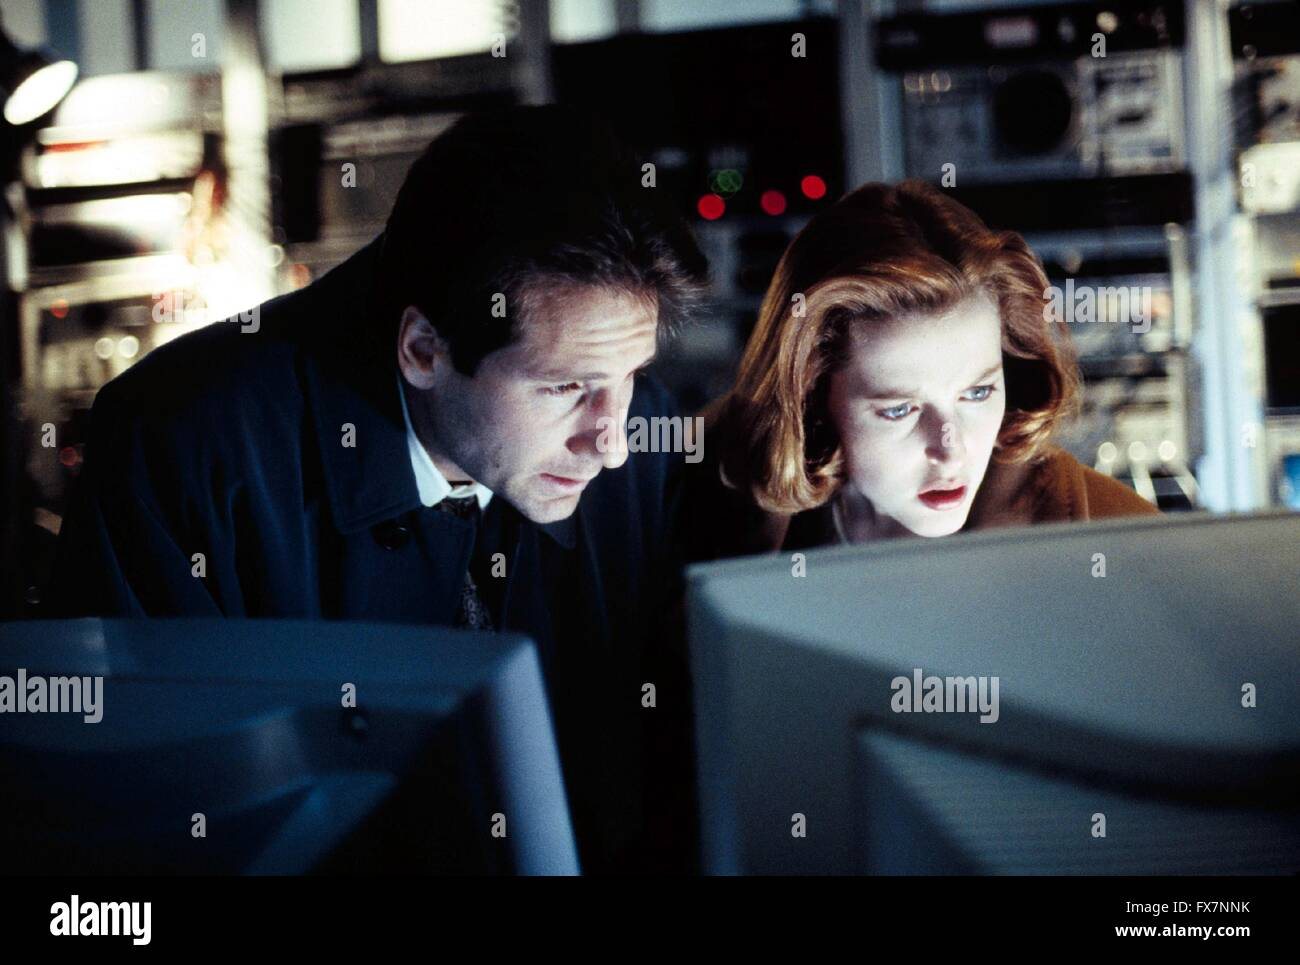 The X Files TV Series 1993 - 2002 USA 1994 Season 2 Created by Chris Carter David Duchovny , Gillian Anderson - Stock Image